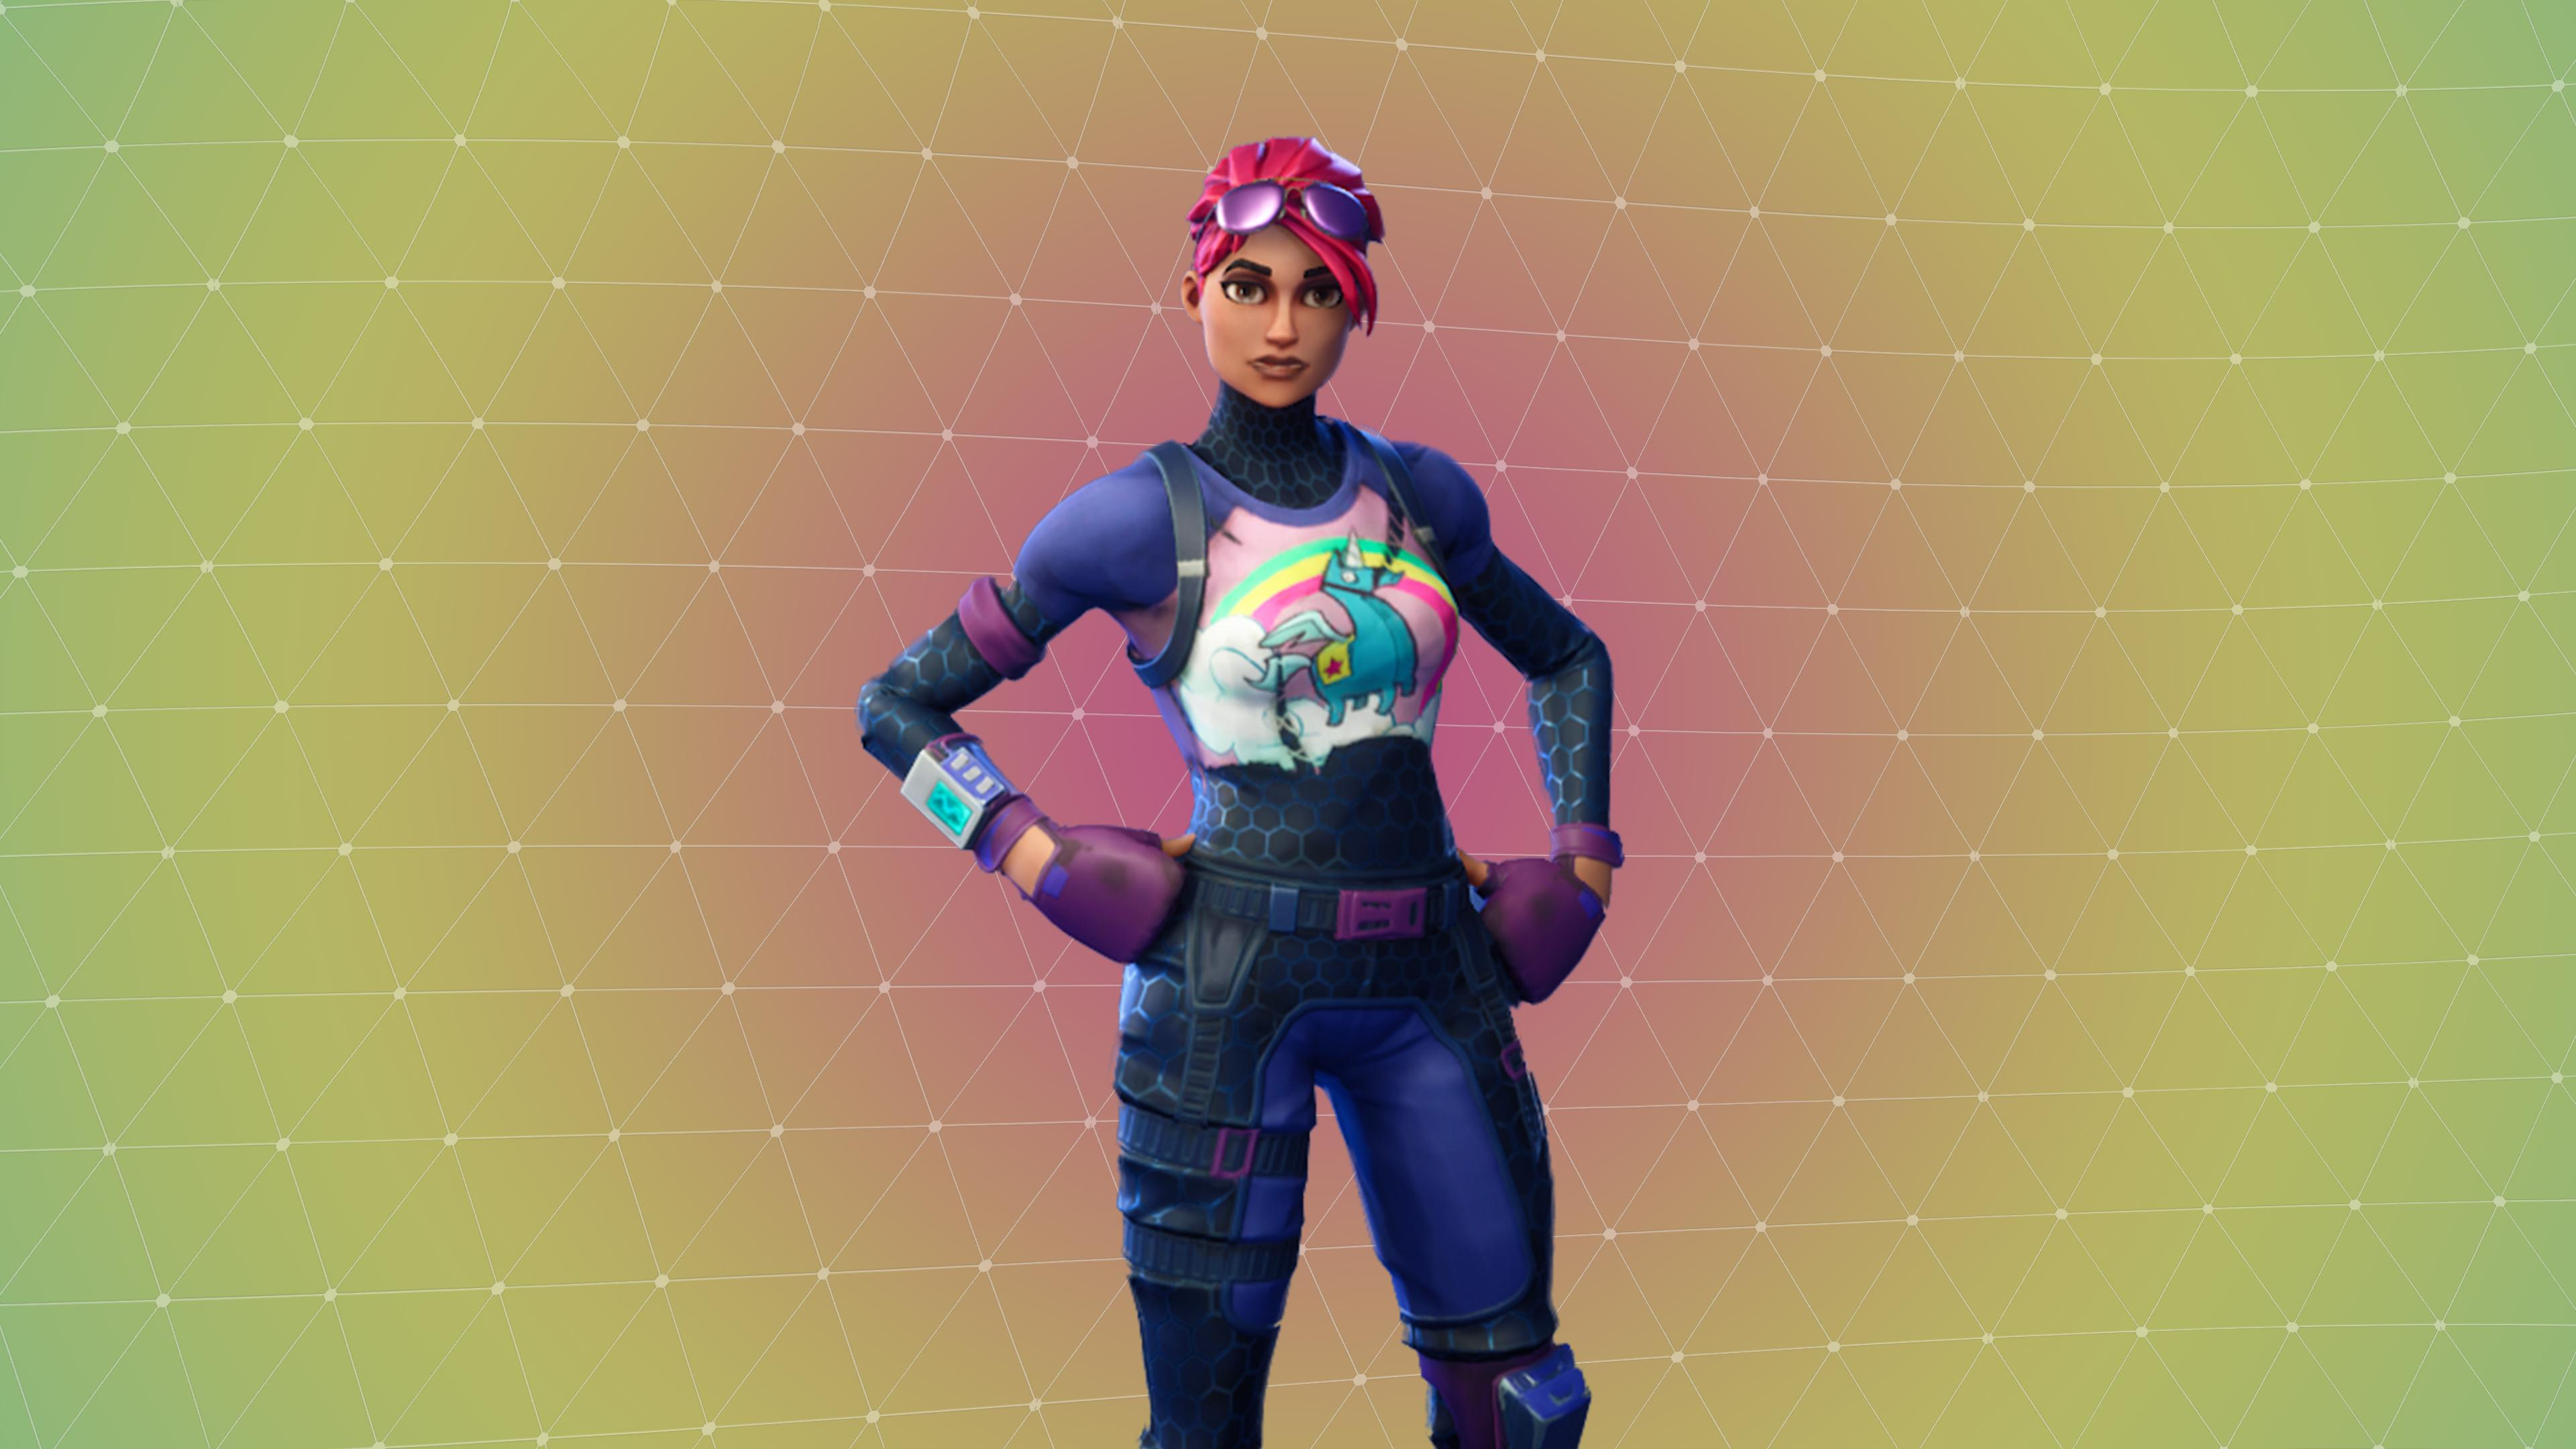 26 Best Free The Bright Bomber Fortnite Wallpapers Wallpaperaccess